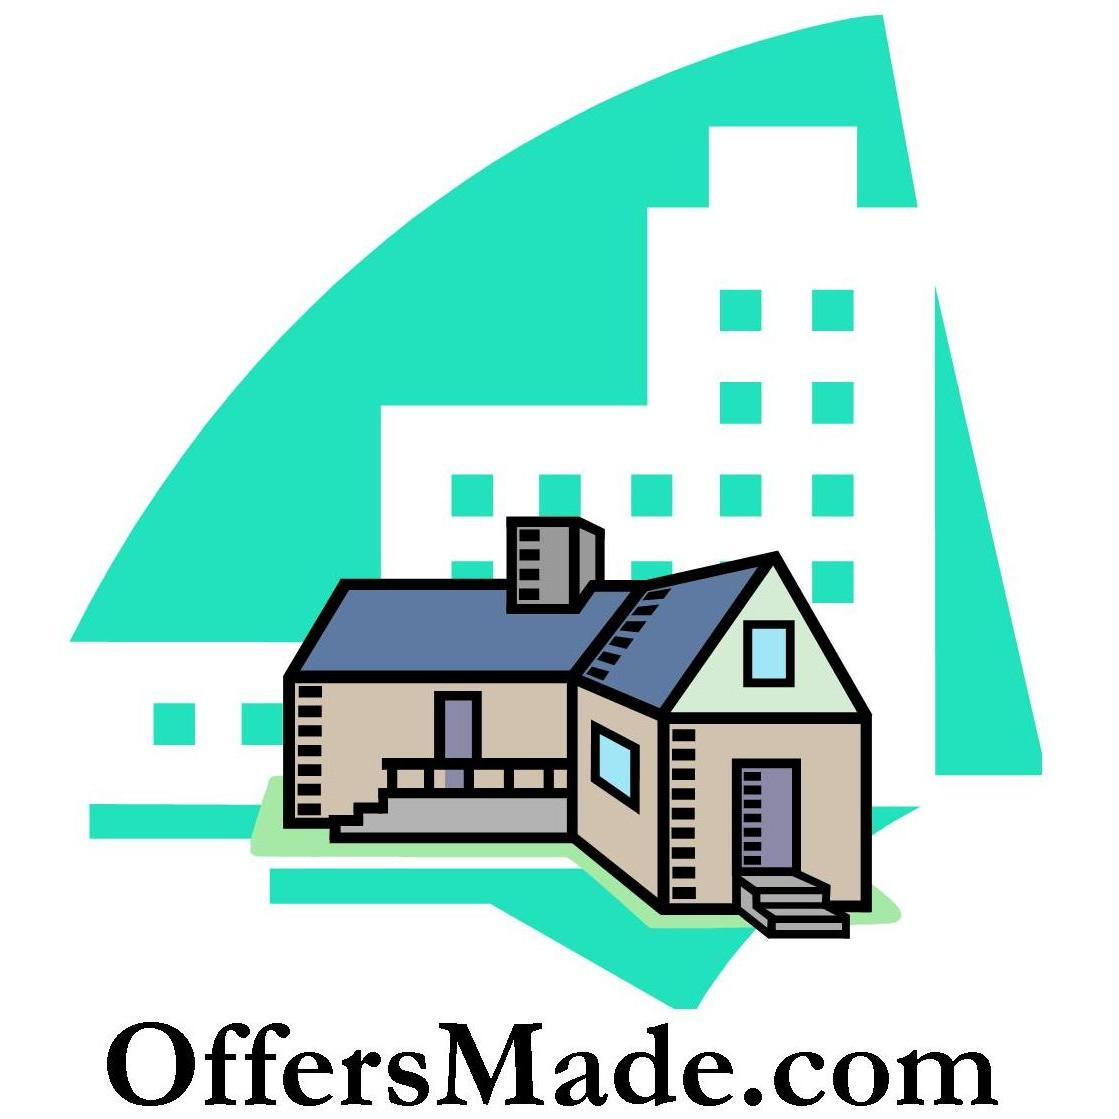 OffersMade, Inc. - We Buy Houses